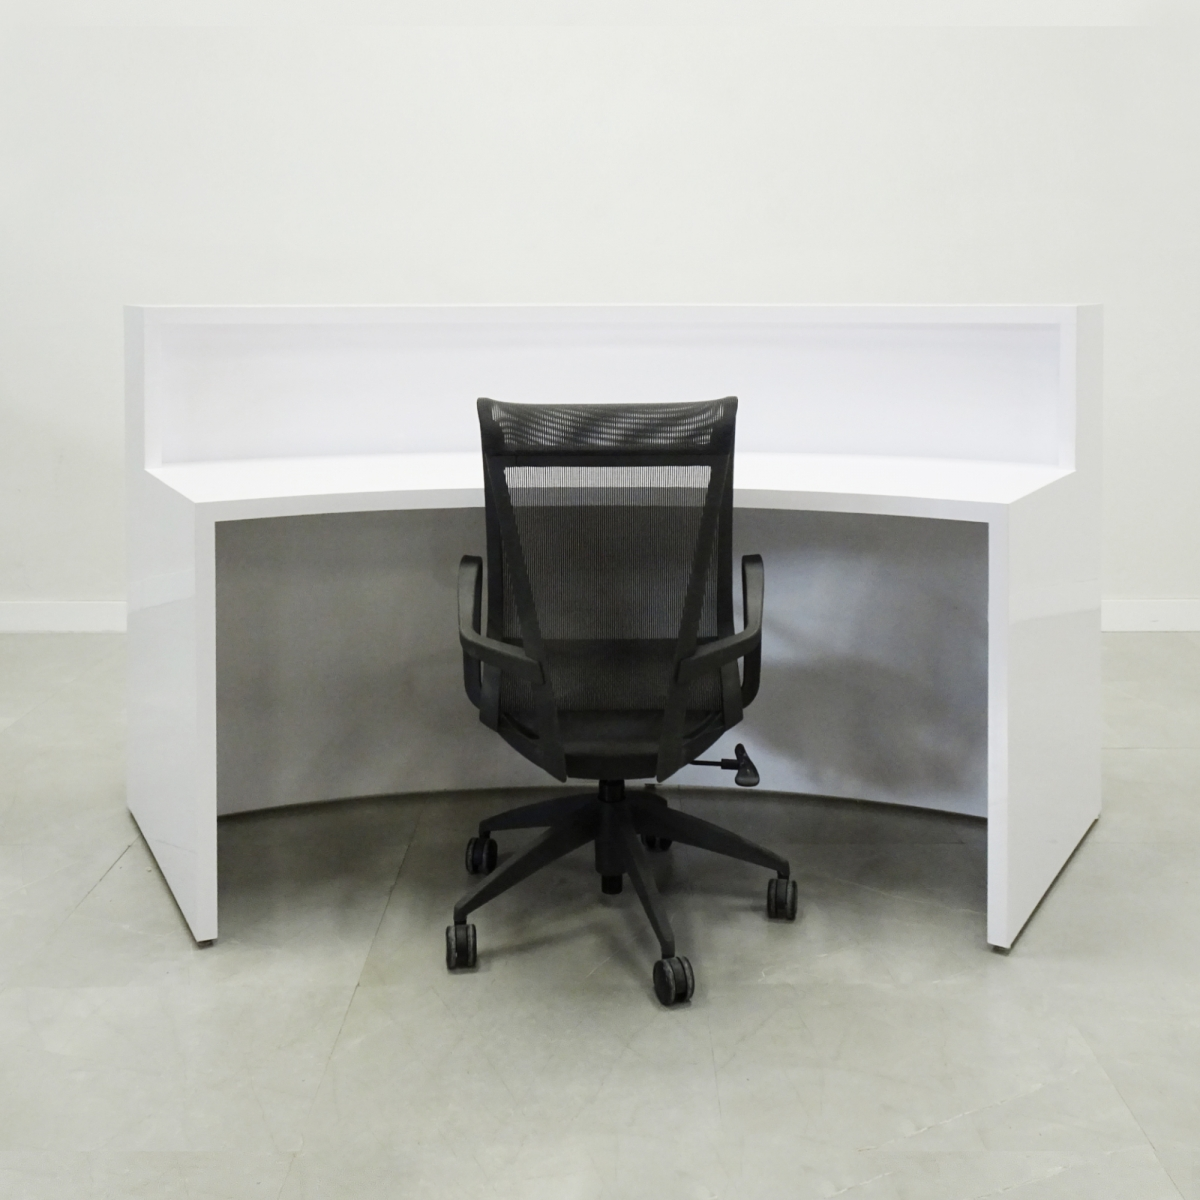 84 In. Seattle Curved Reception Desk